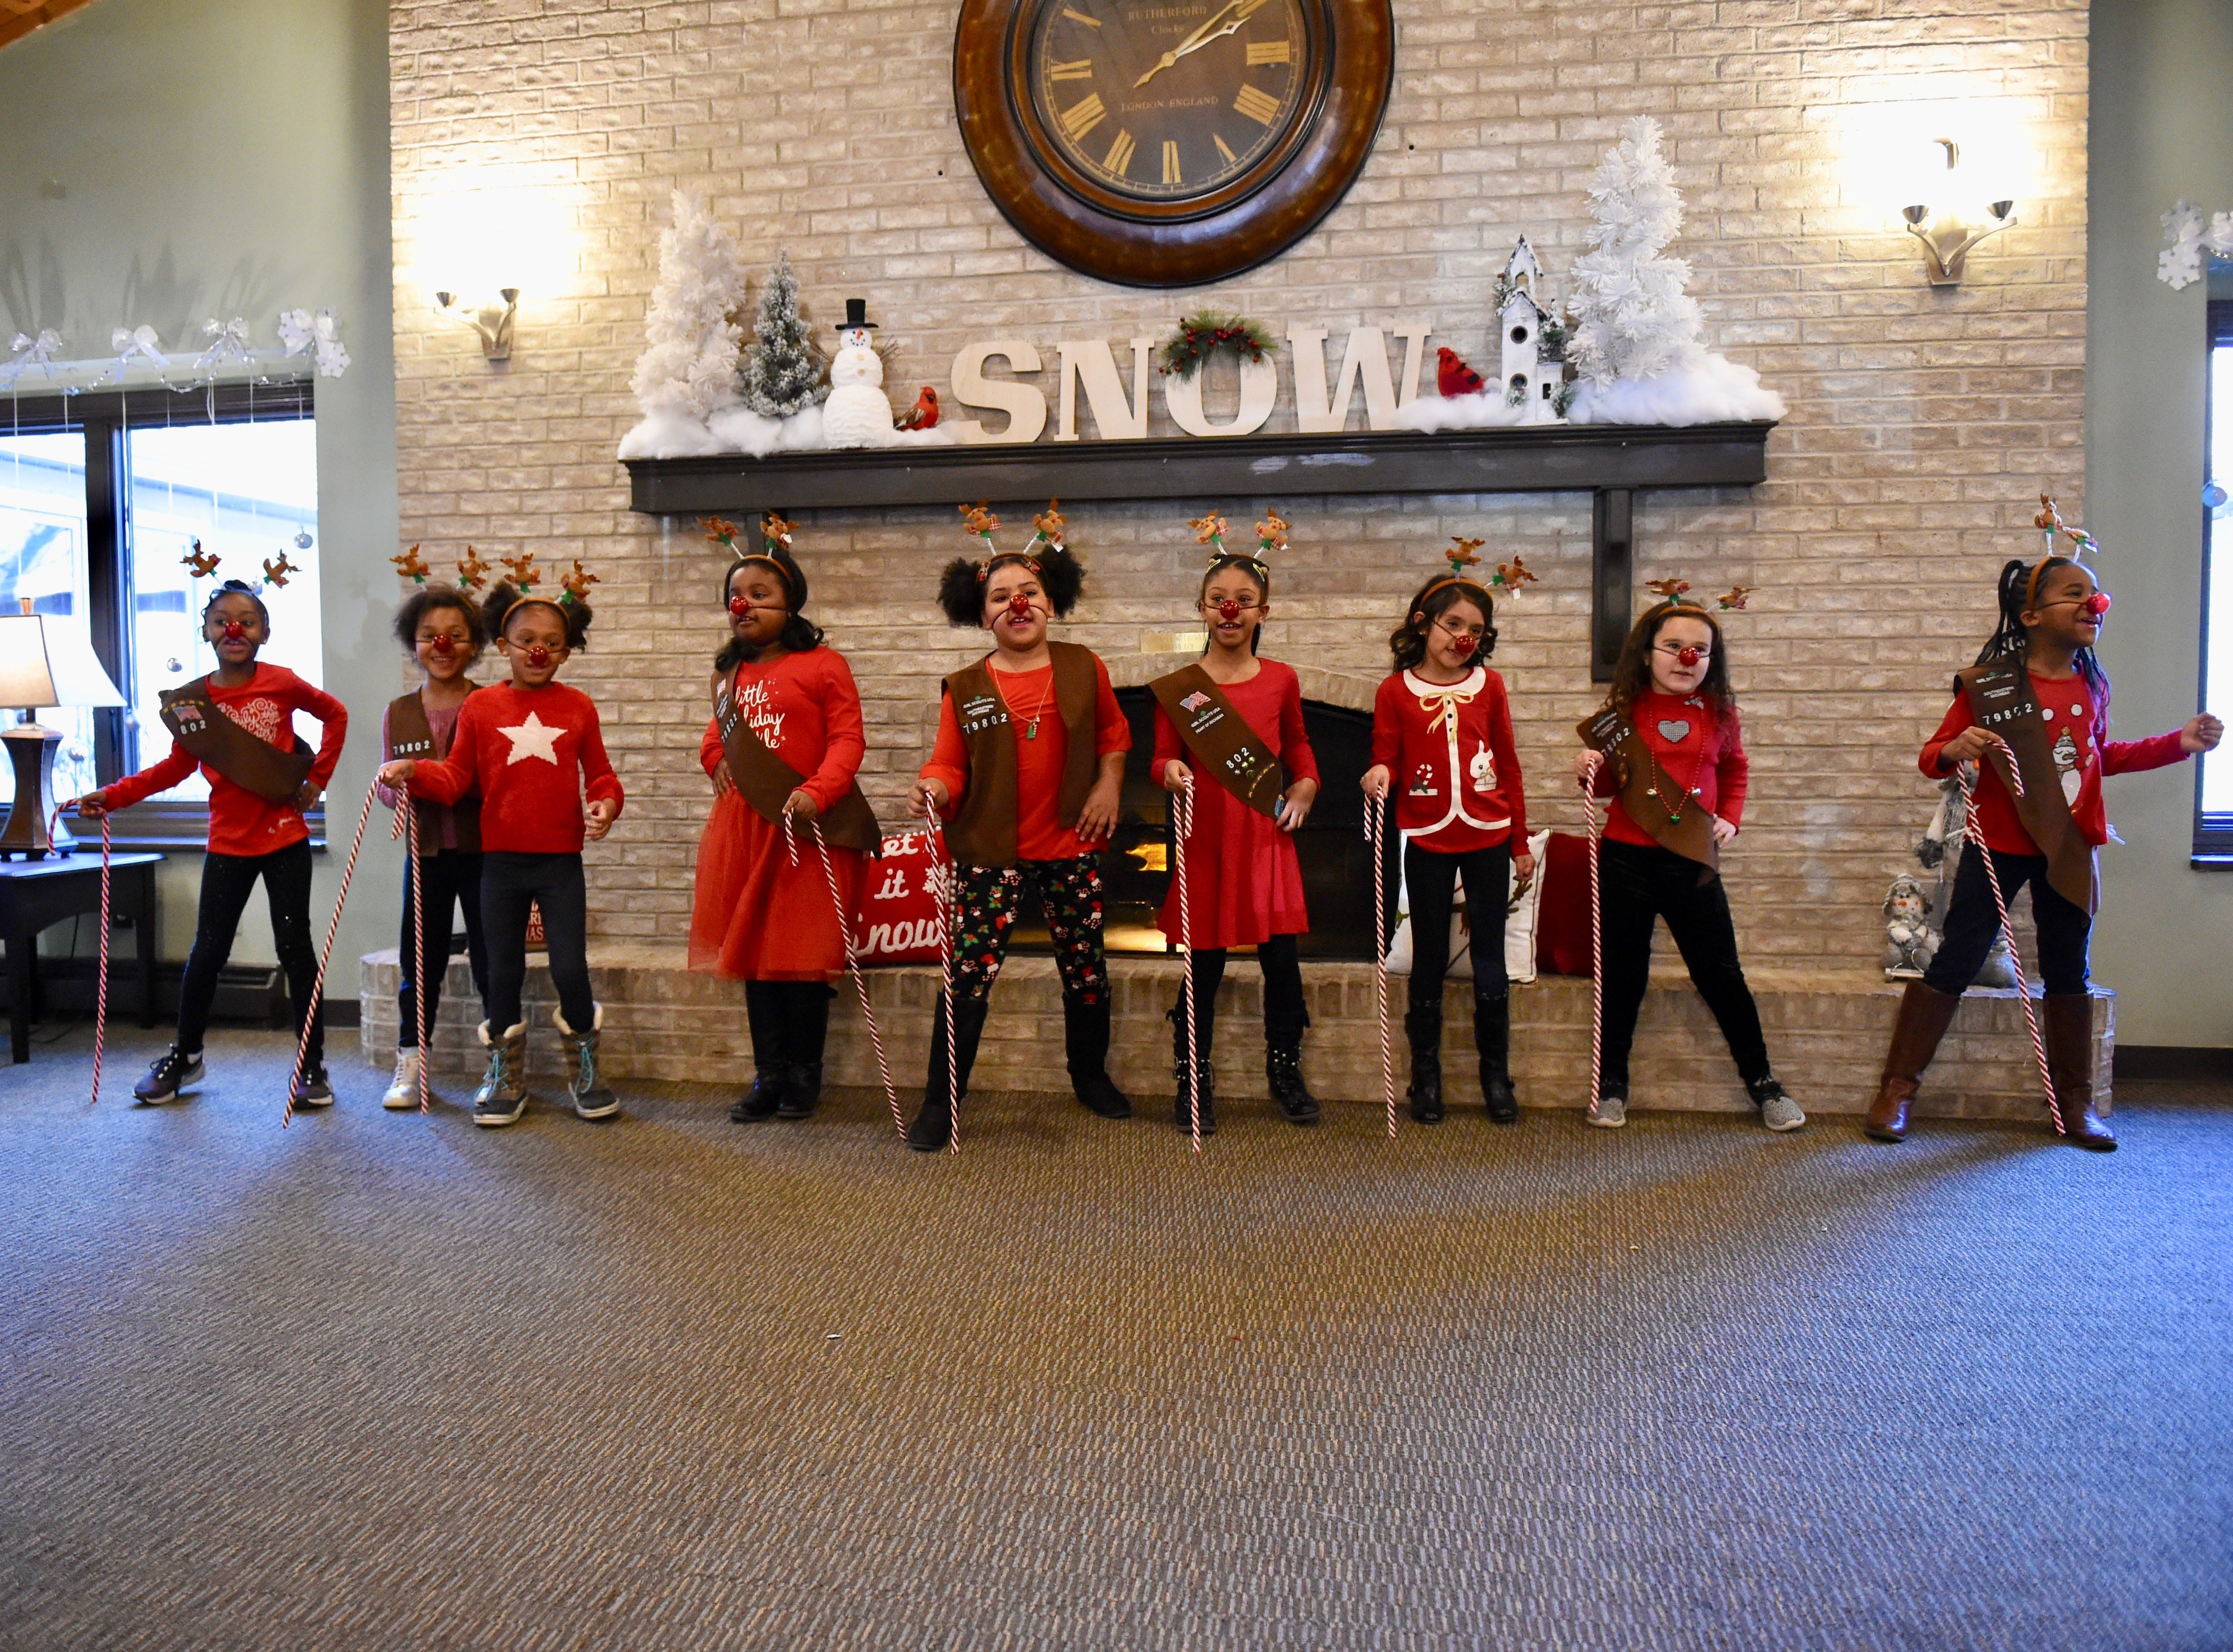 Wood Creek Elementary Brownie Troop # 79802 members Taelor Dowdell (from left), Lucy Deason, Tamsin Palland, Sanyia Dunlap, Daisy Thomas, Milani Parker, Mia Botello, Marissa Hochberg and Oliveah Taylor perform at Courtyard Manor of Farmington Hills on Saturday.